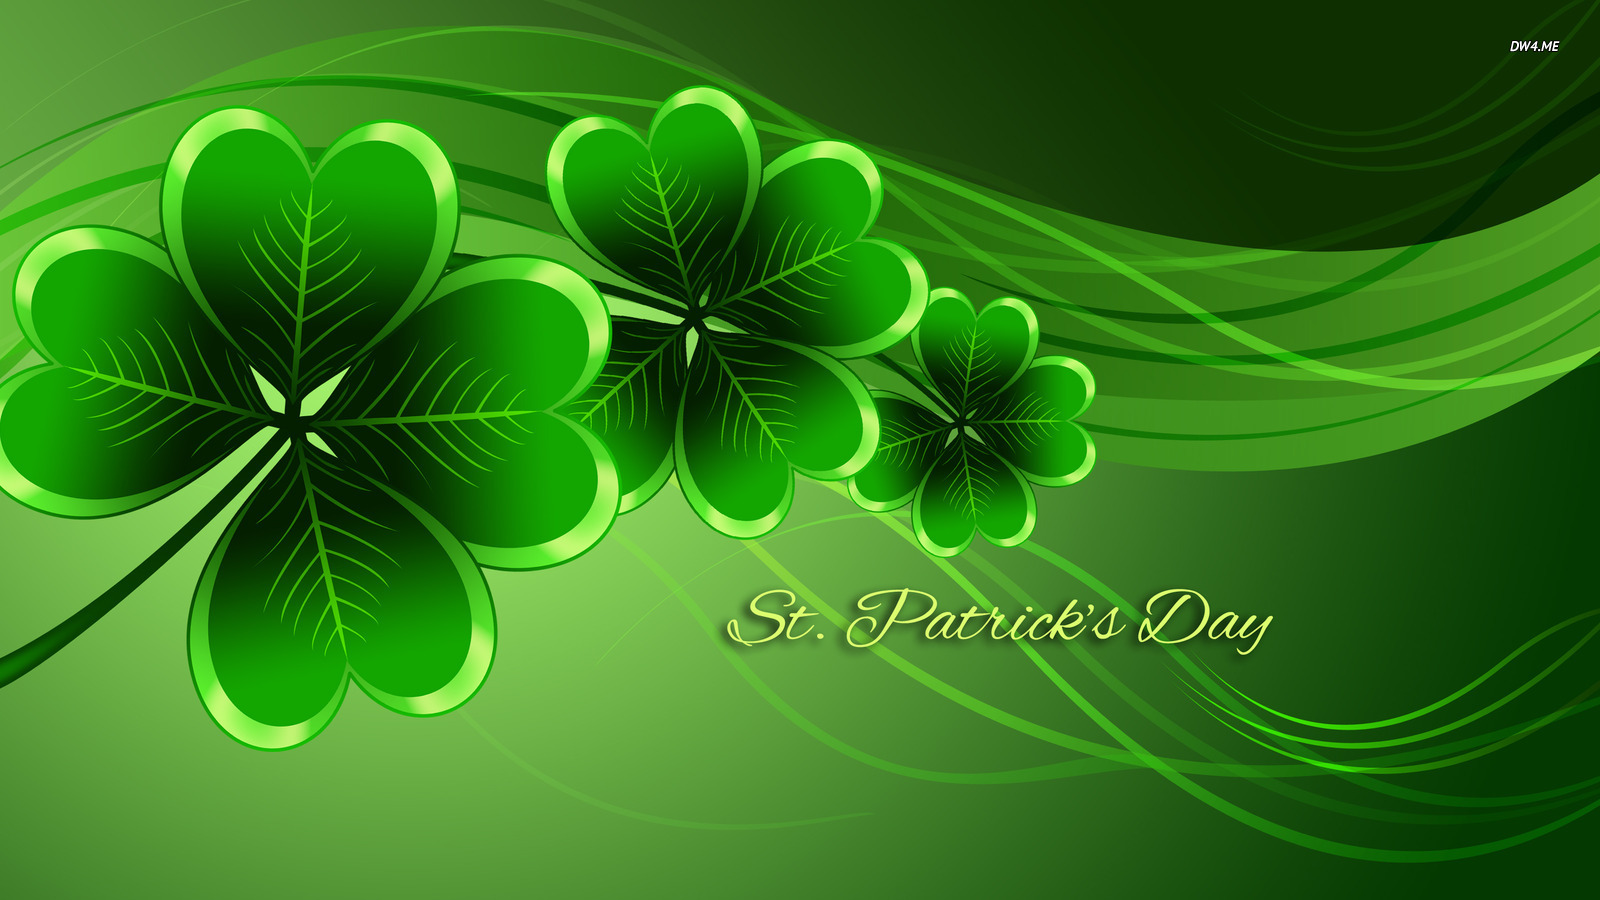 [49+] St Patrick's Day Wallpaper Backgrounds on ...